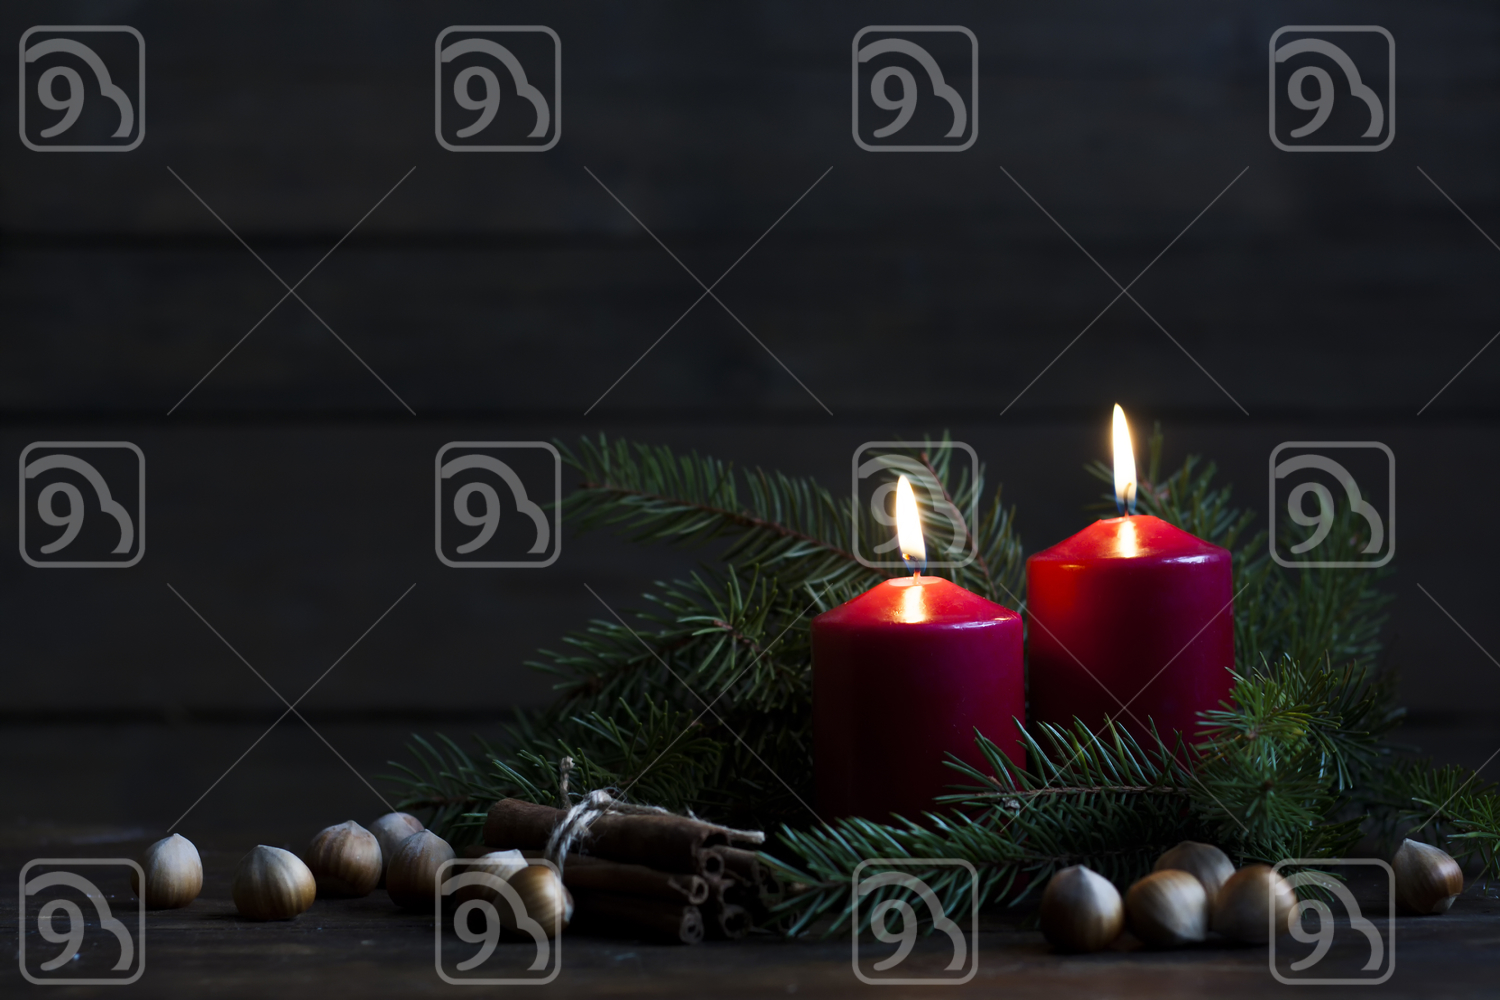 Christmas candles and lights